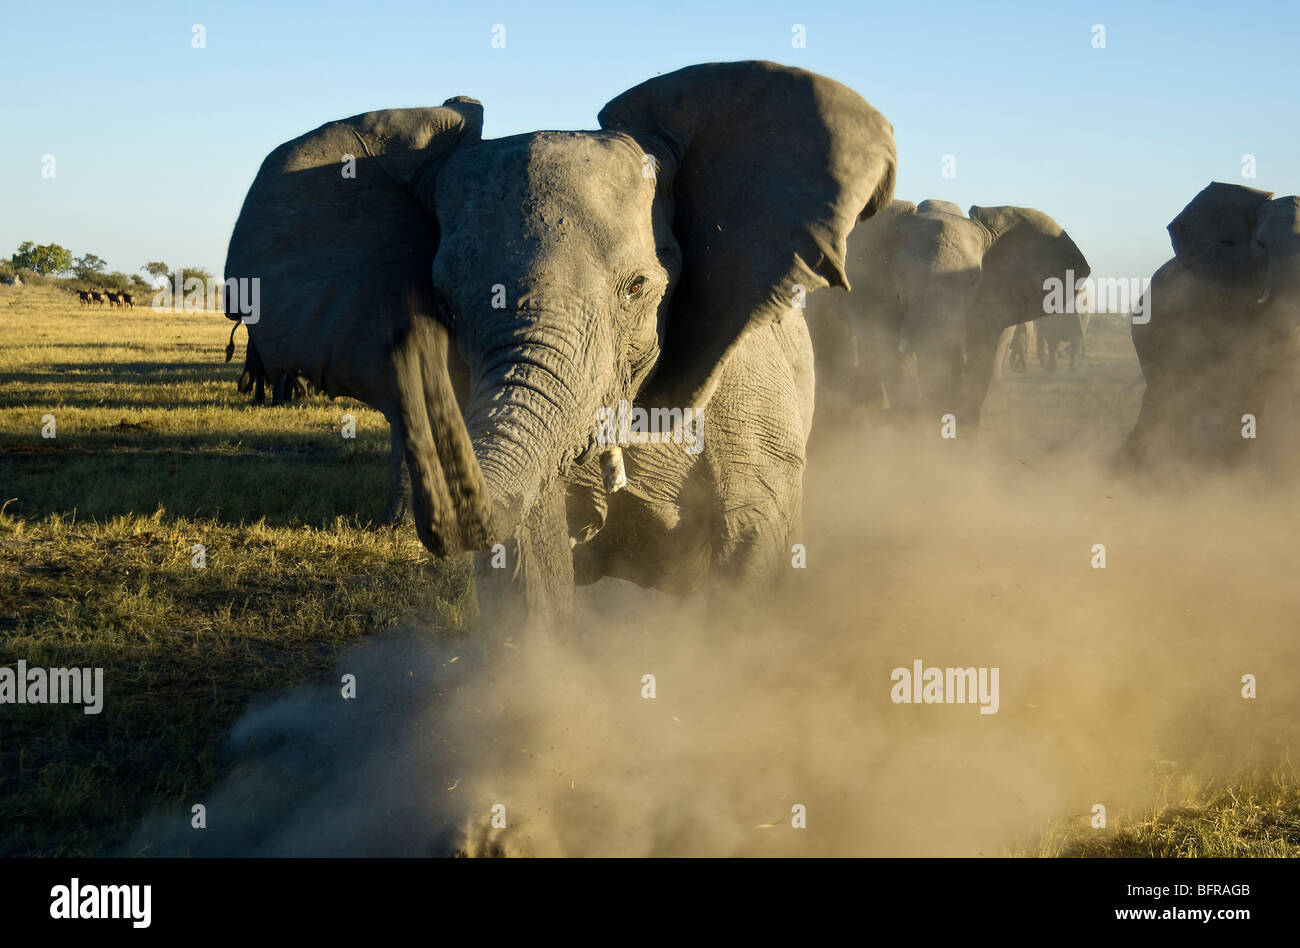 An angry elephant cow charges in a cloud of dust - Stock Image